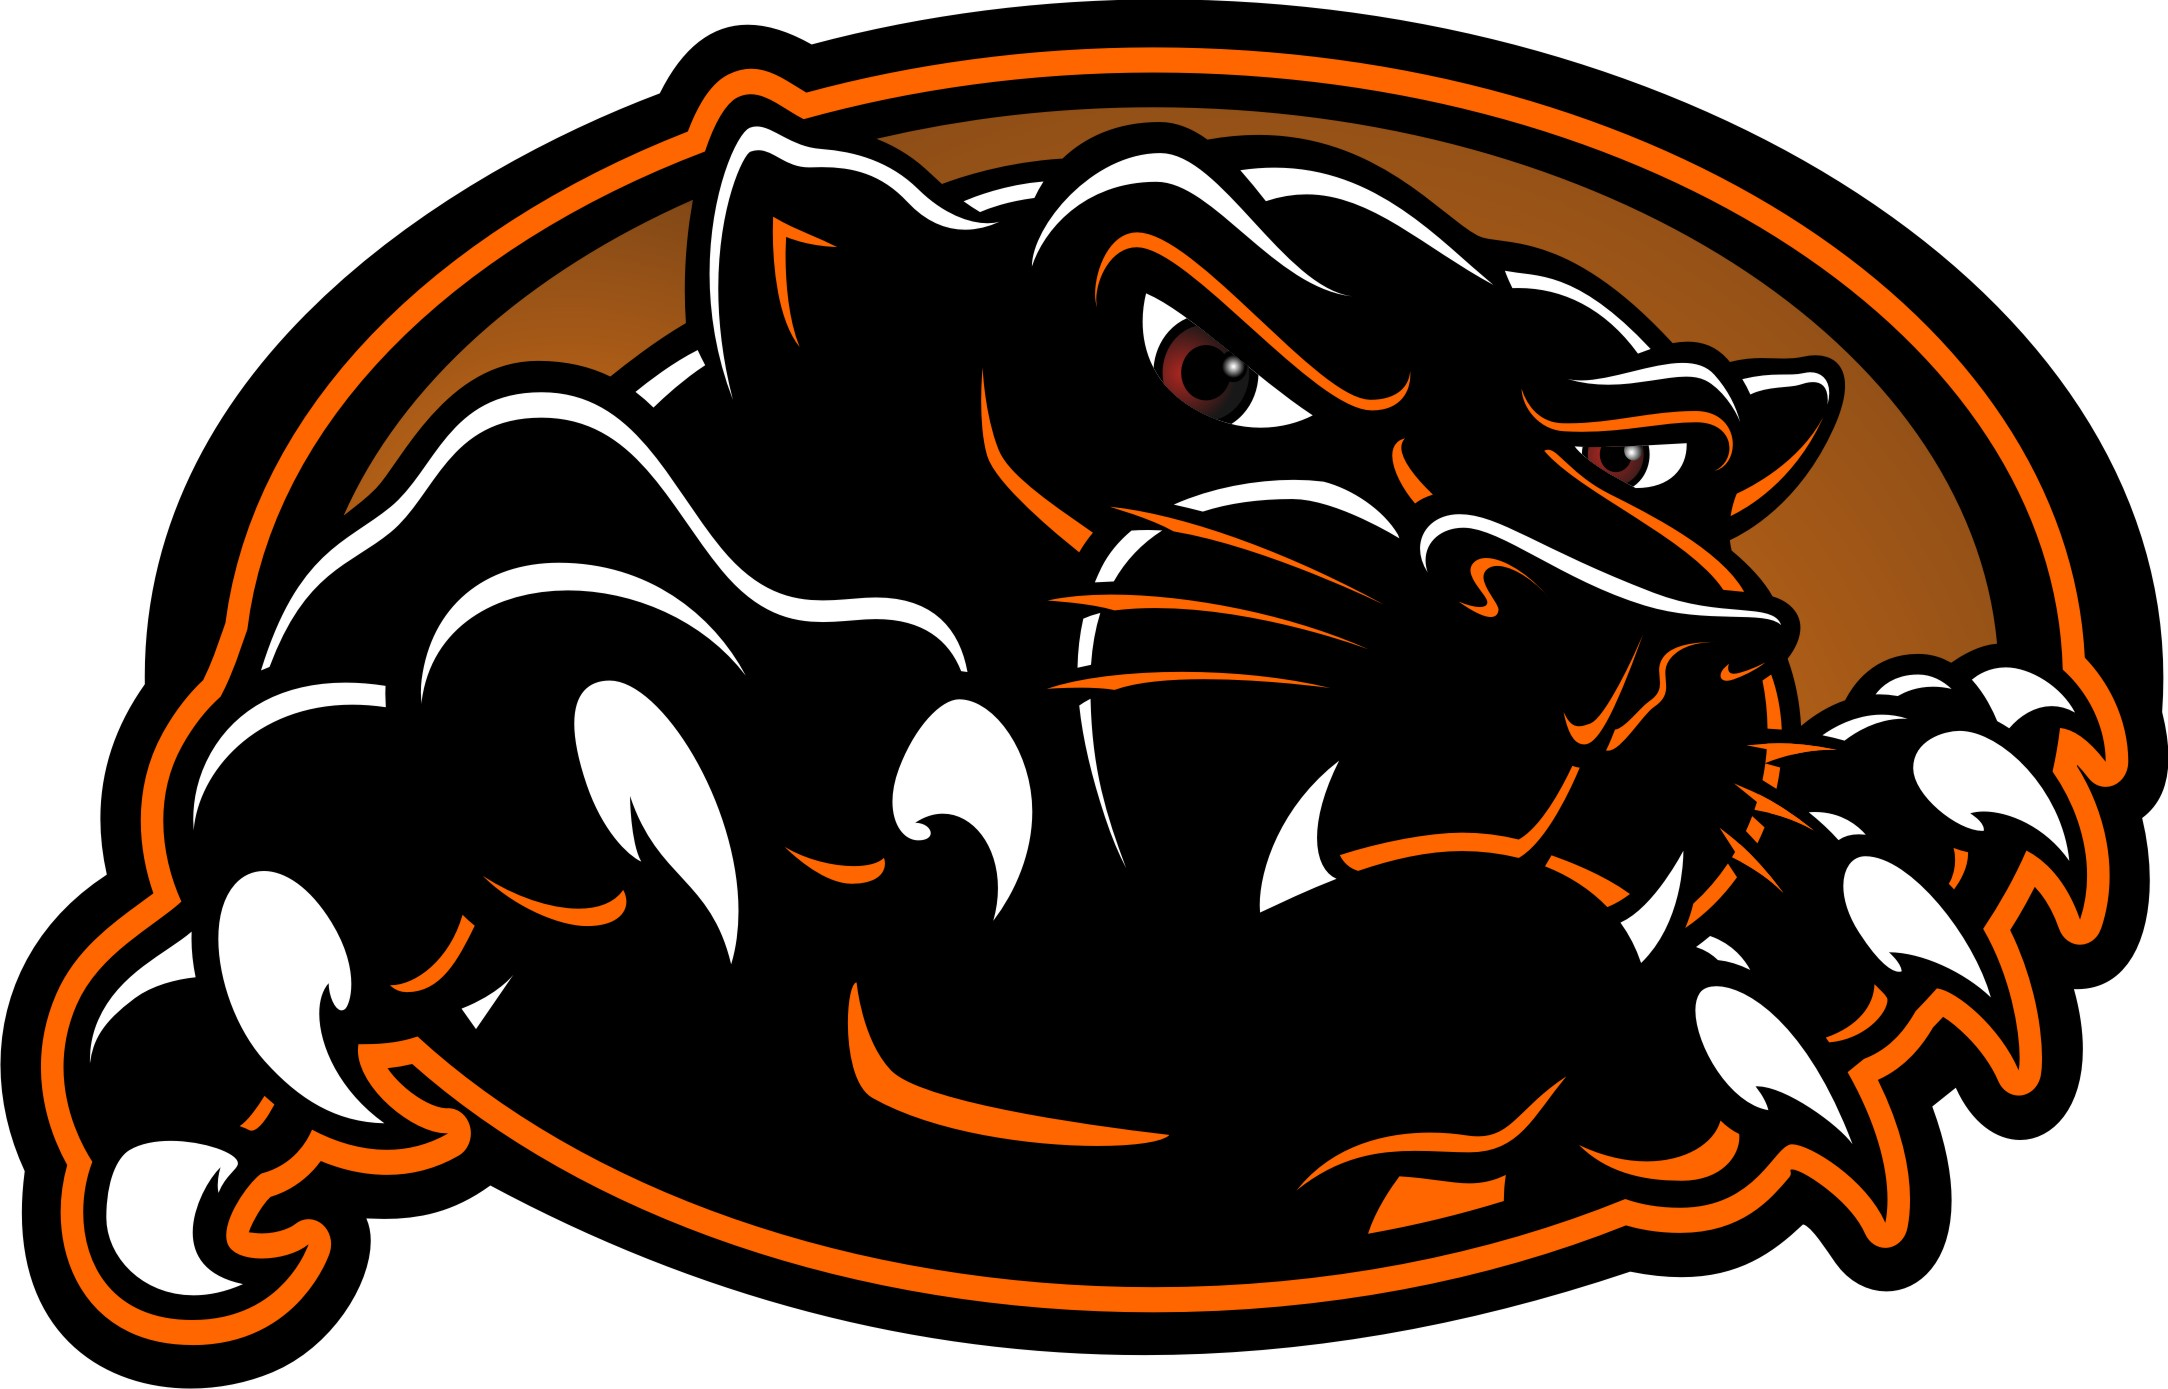 panthers school logo images